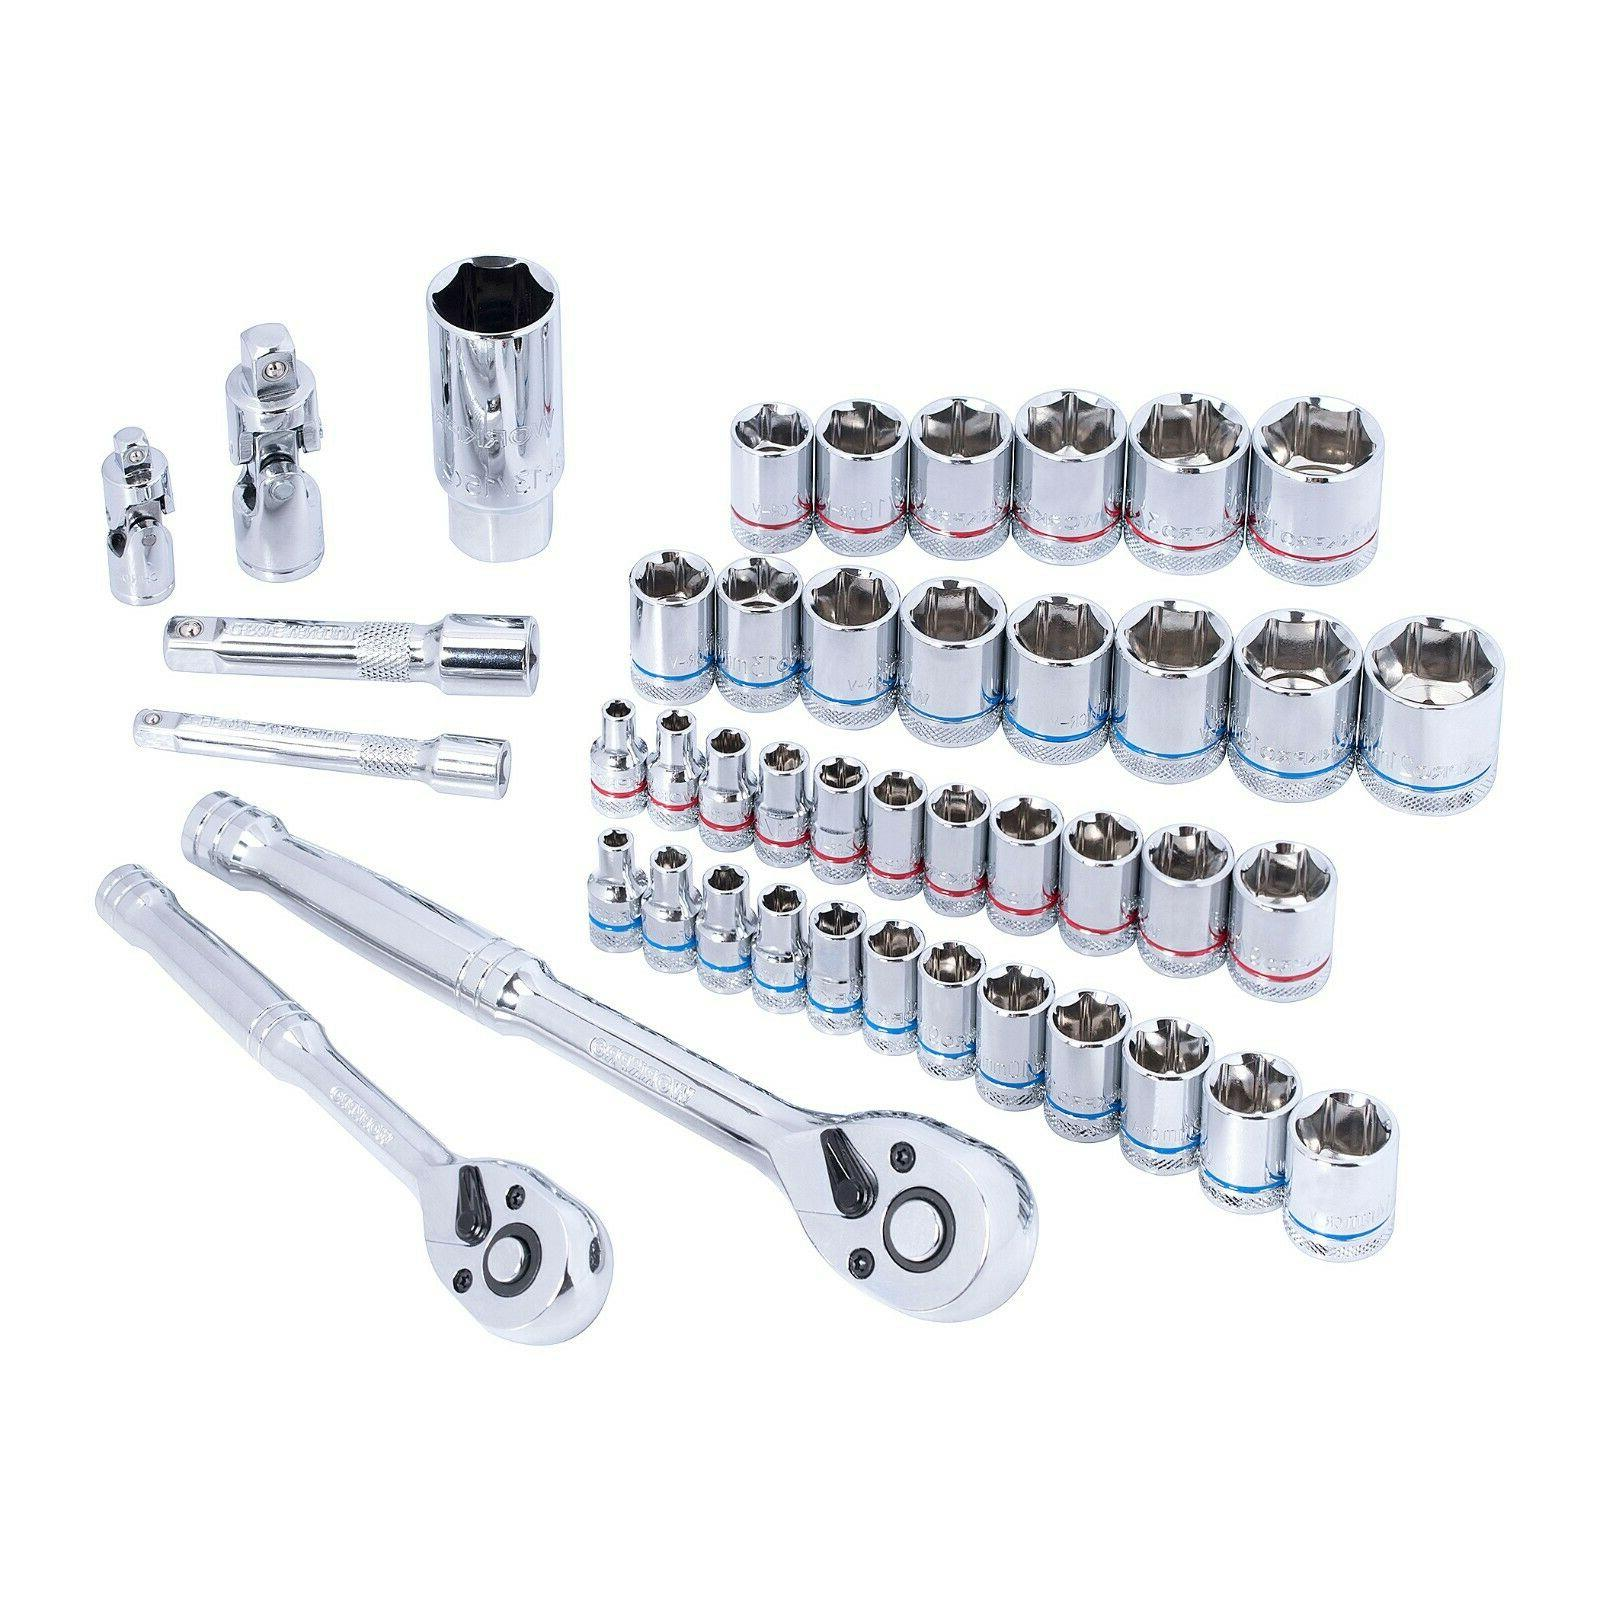 Drive Set 145 Pieces 1/4-inch Socket